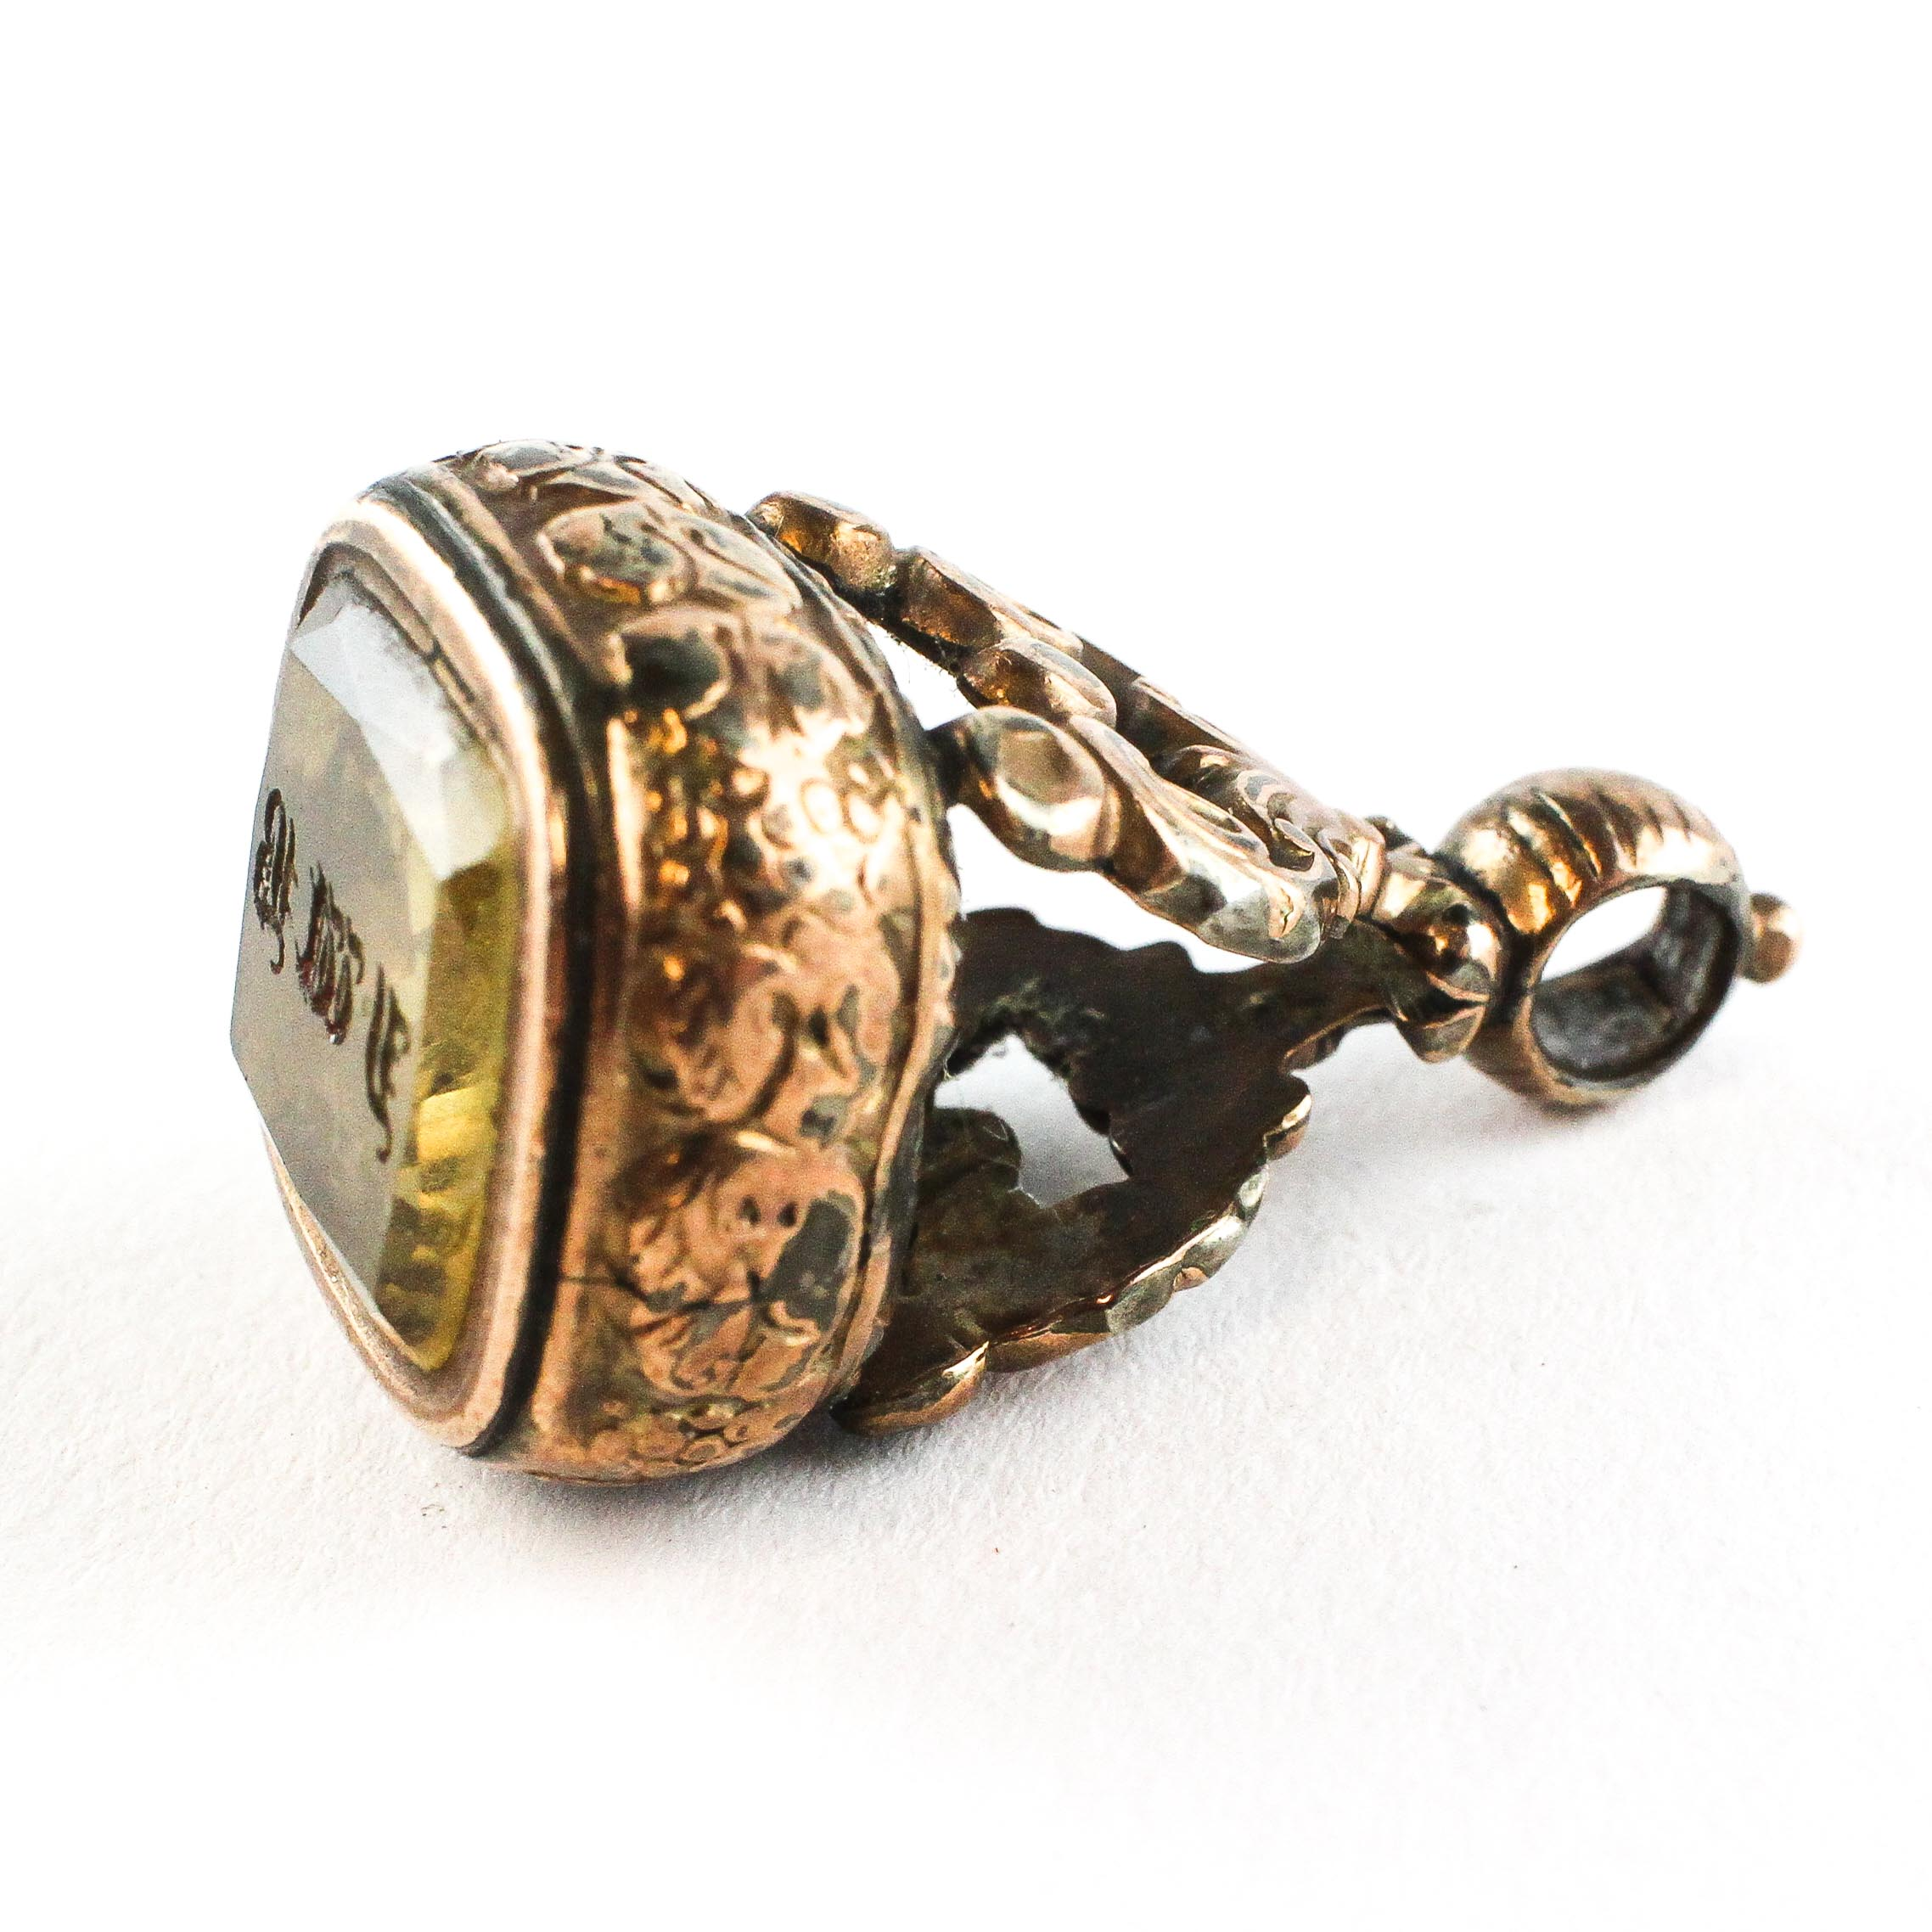 A gold plated ornate set with yellow stone. - Image 2 of 2